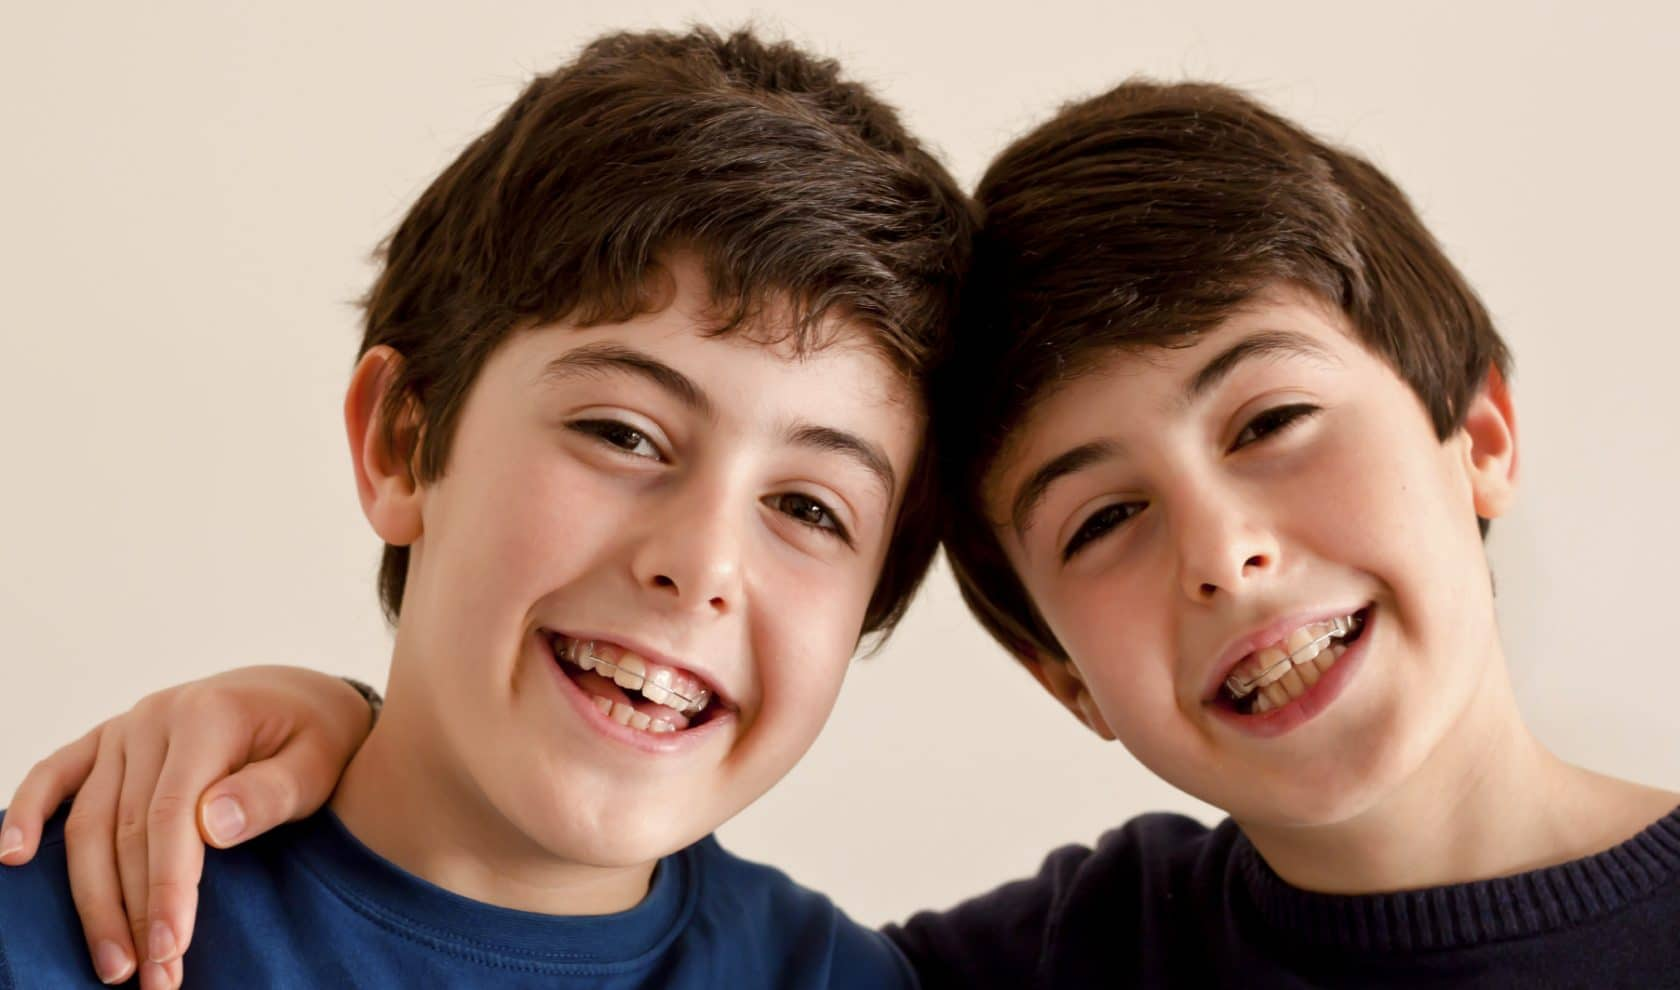 Photo of twins wearing braces